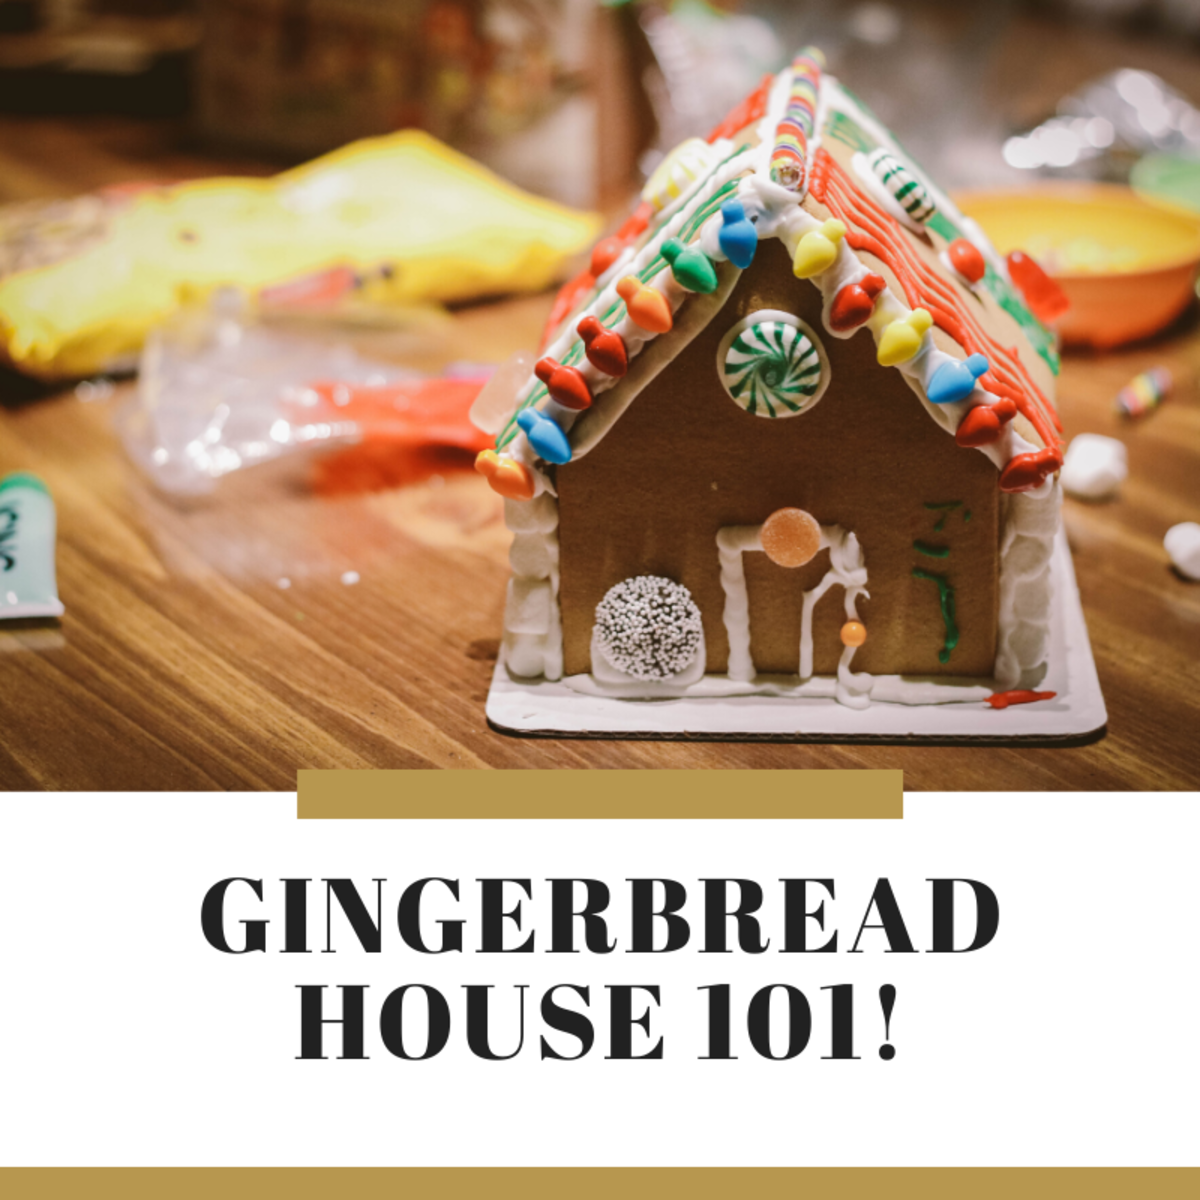 This article provides a great recipe for creating the dough and  icing for your gingerbread house.